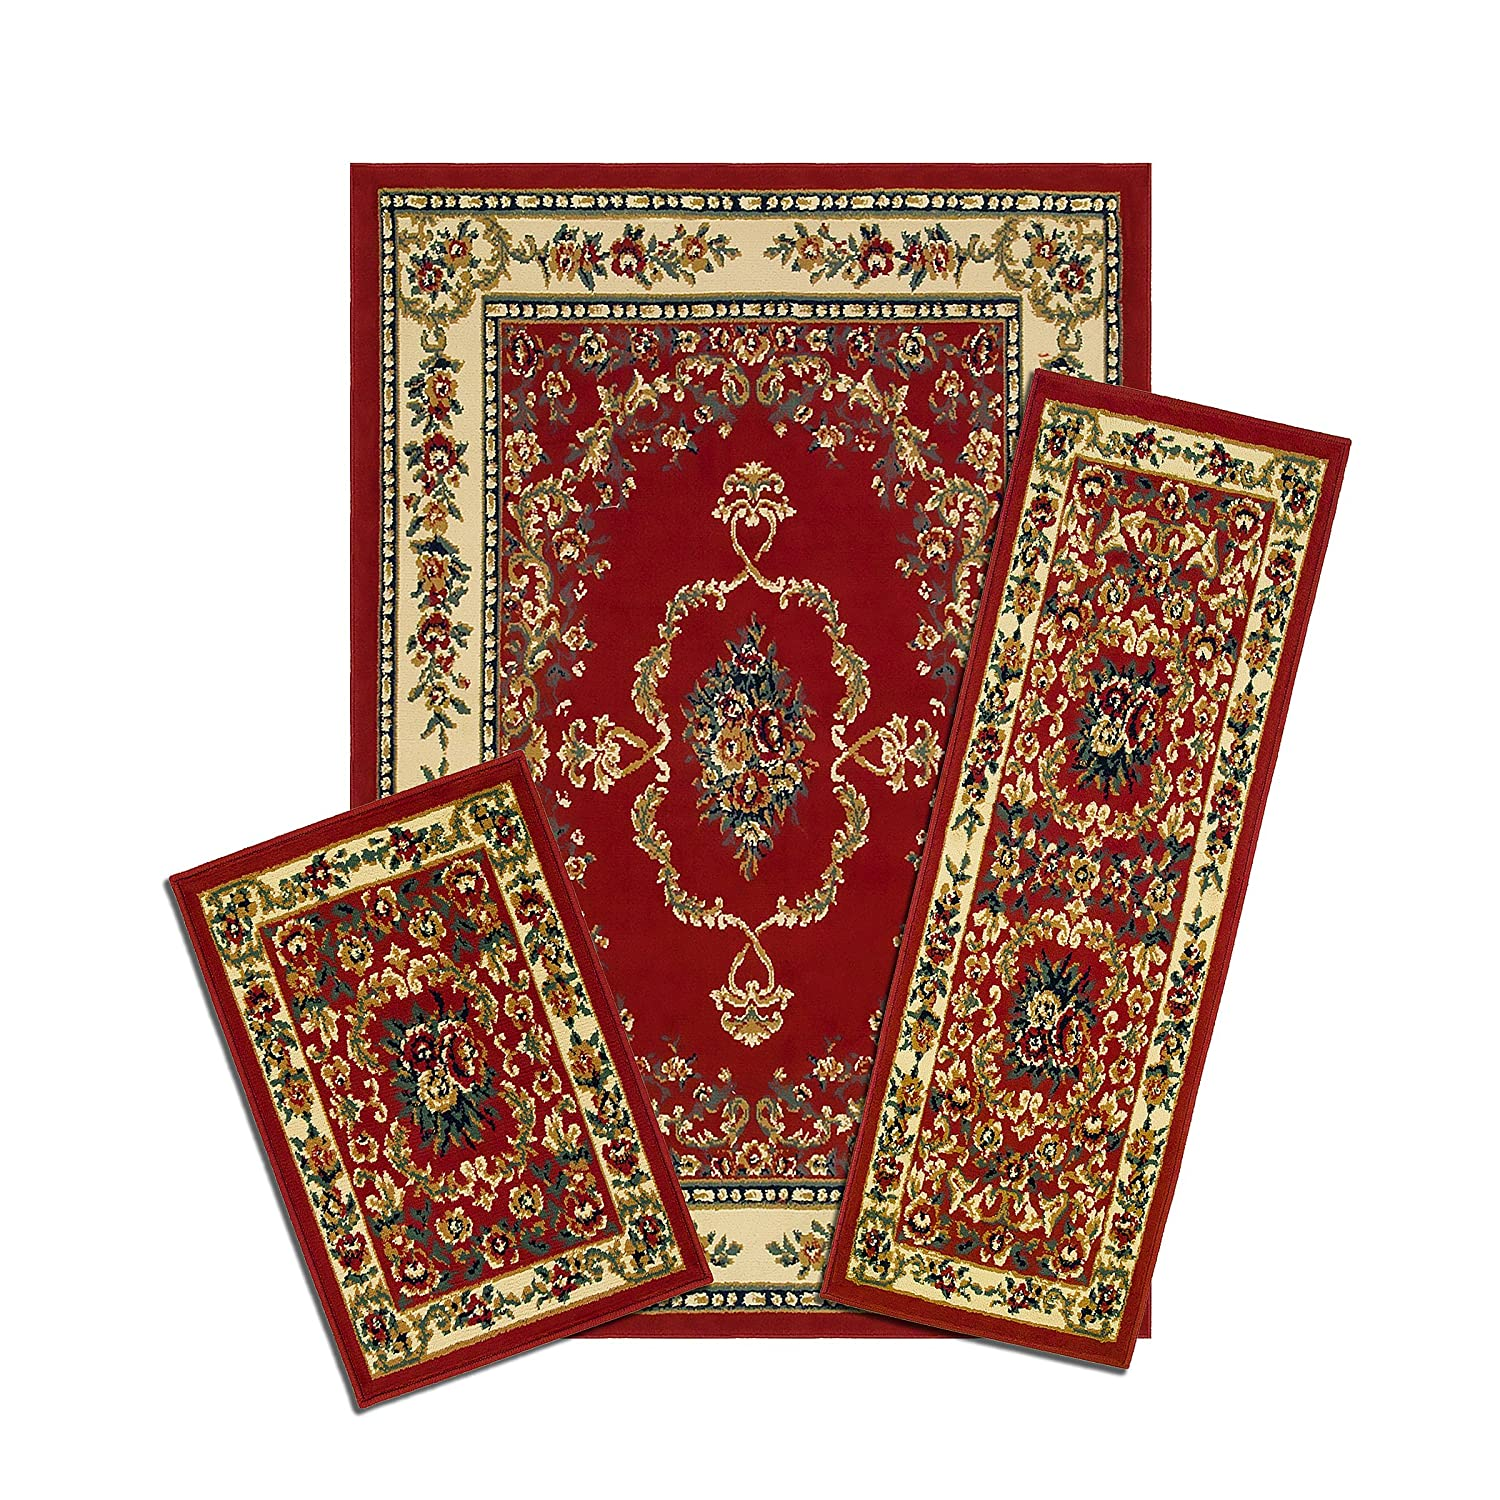 Achim Home Furnishings Capri 3-Piece Rug Set, Savonnerie - Red Achim Imports X470/372-R